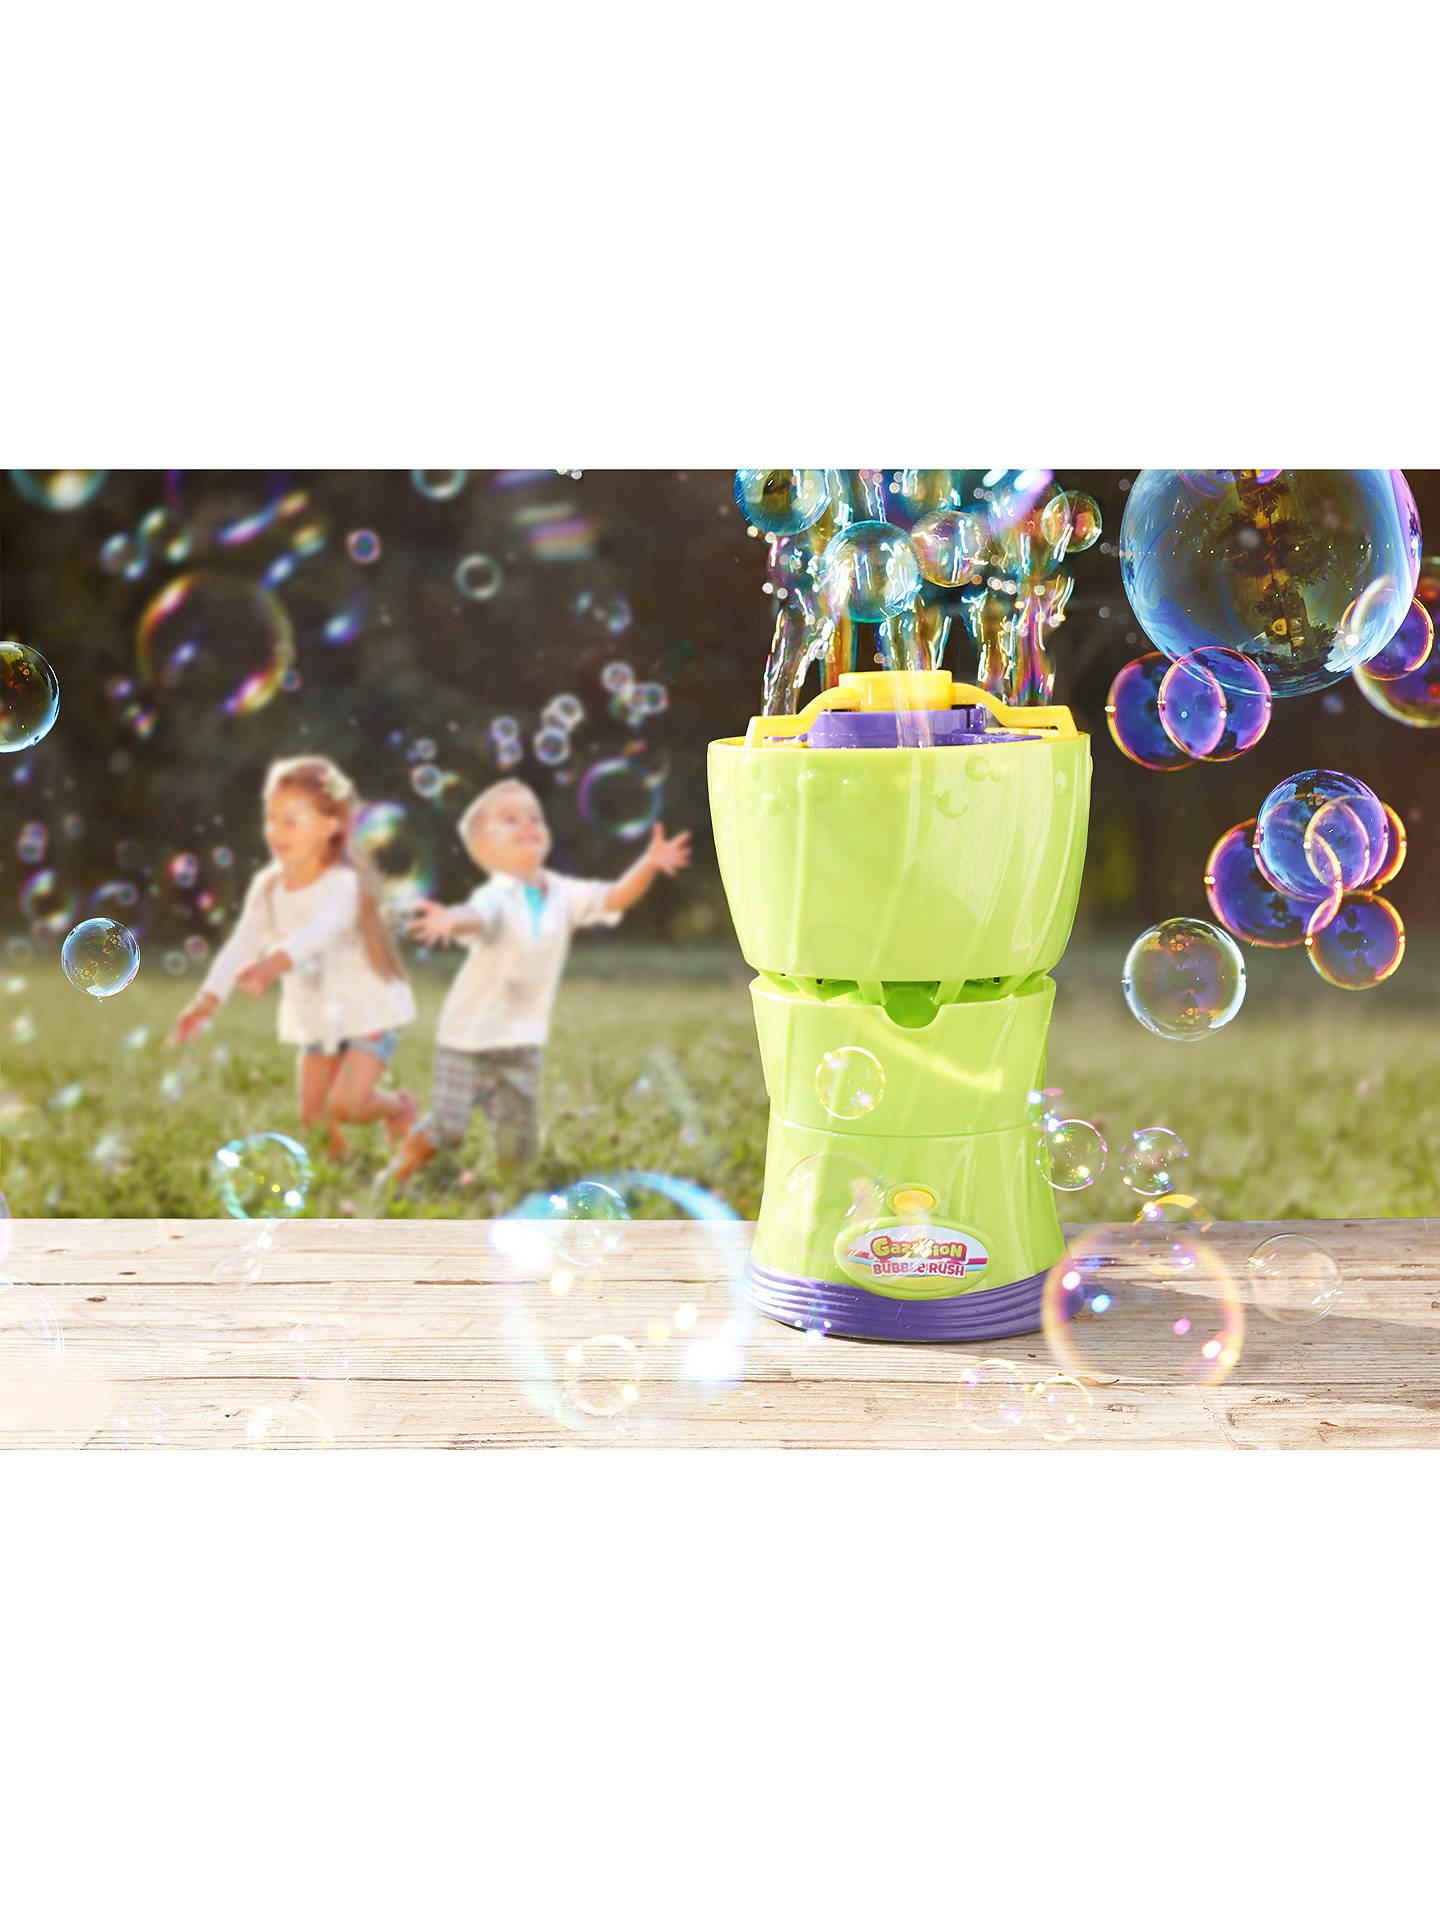 Buy Gazillion Bubbles Flash-N-Spin Online at johnlewis.com